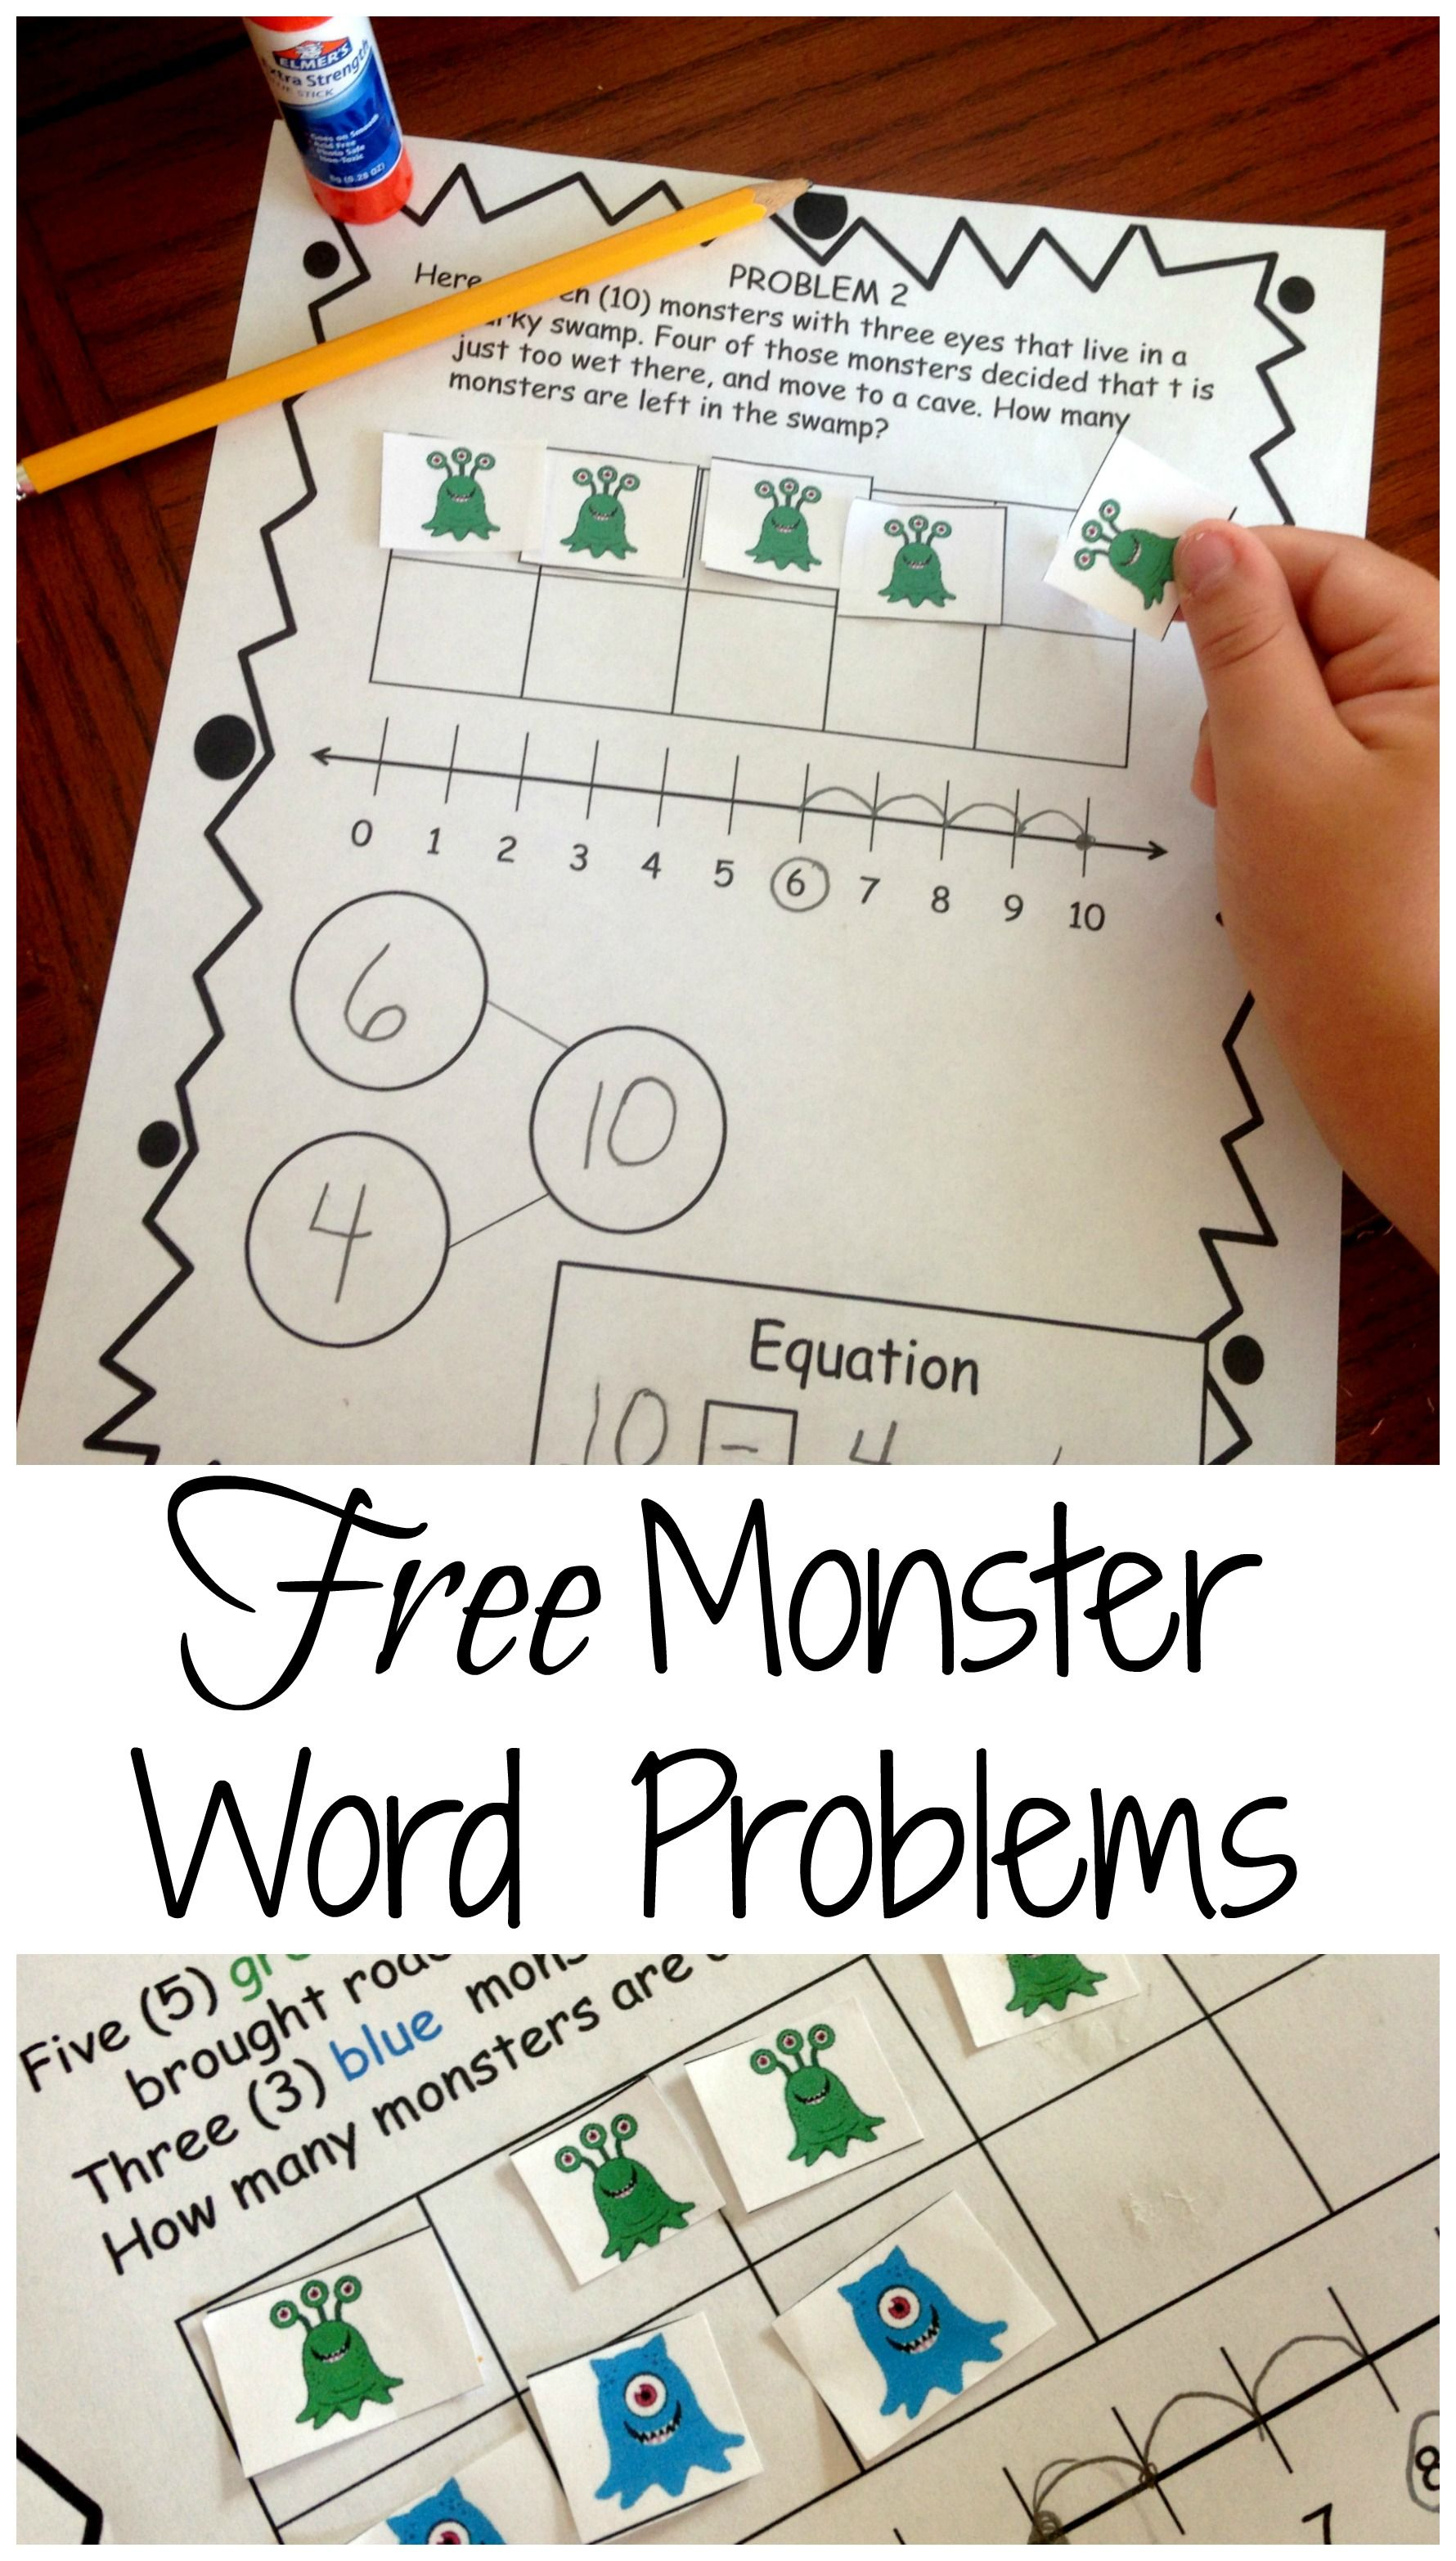 Need To Teach Word Problems Free Monster Word Problems